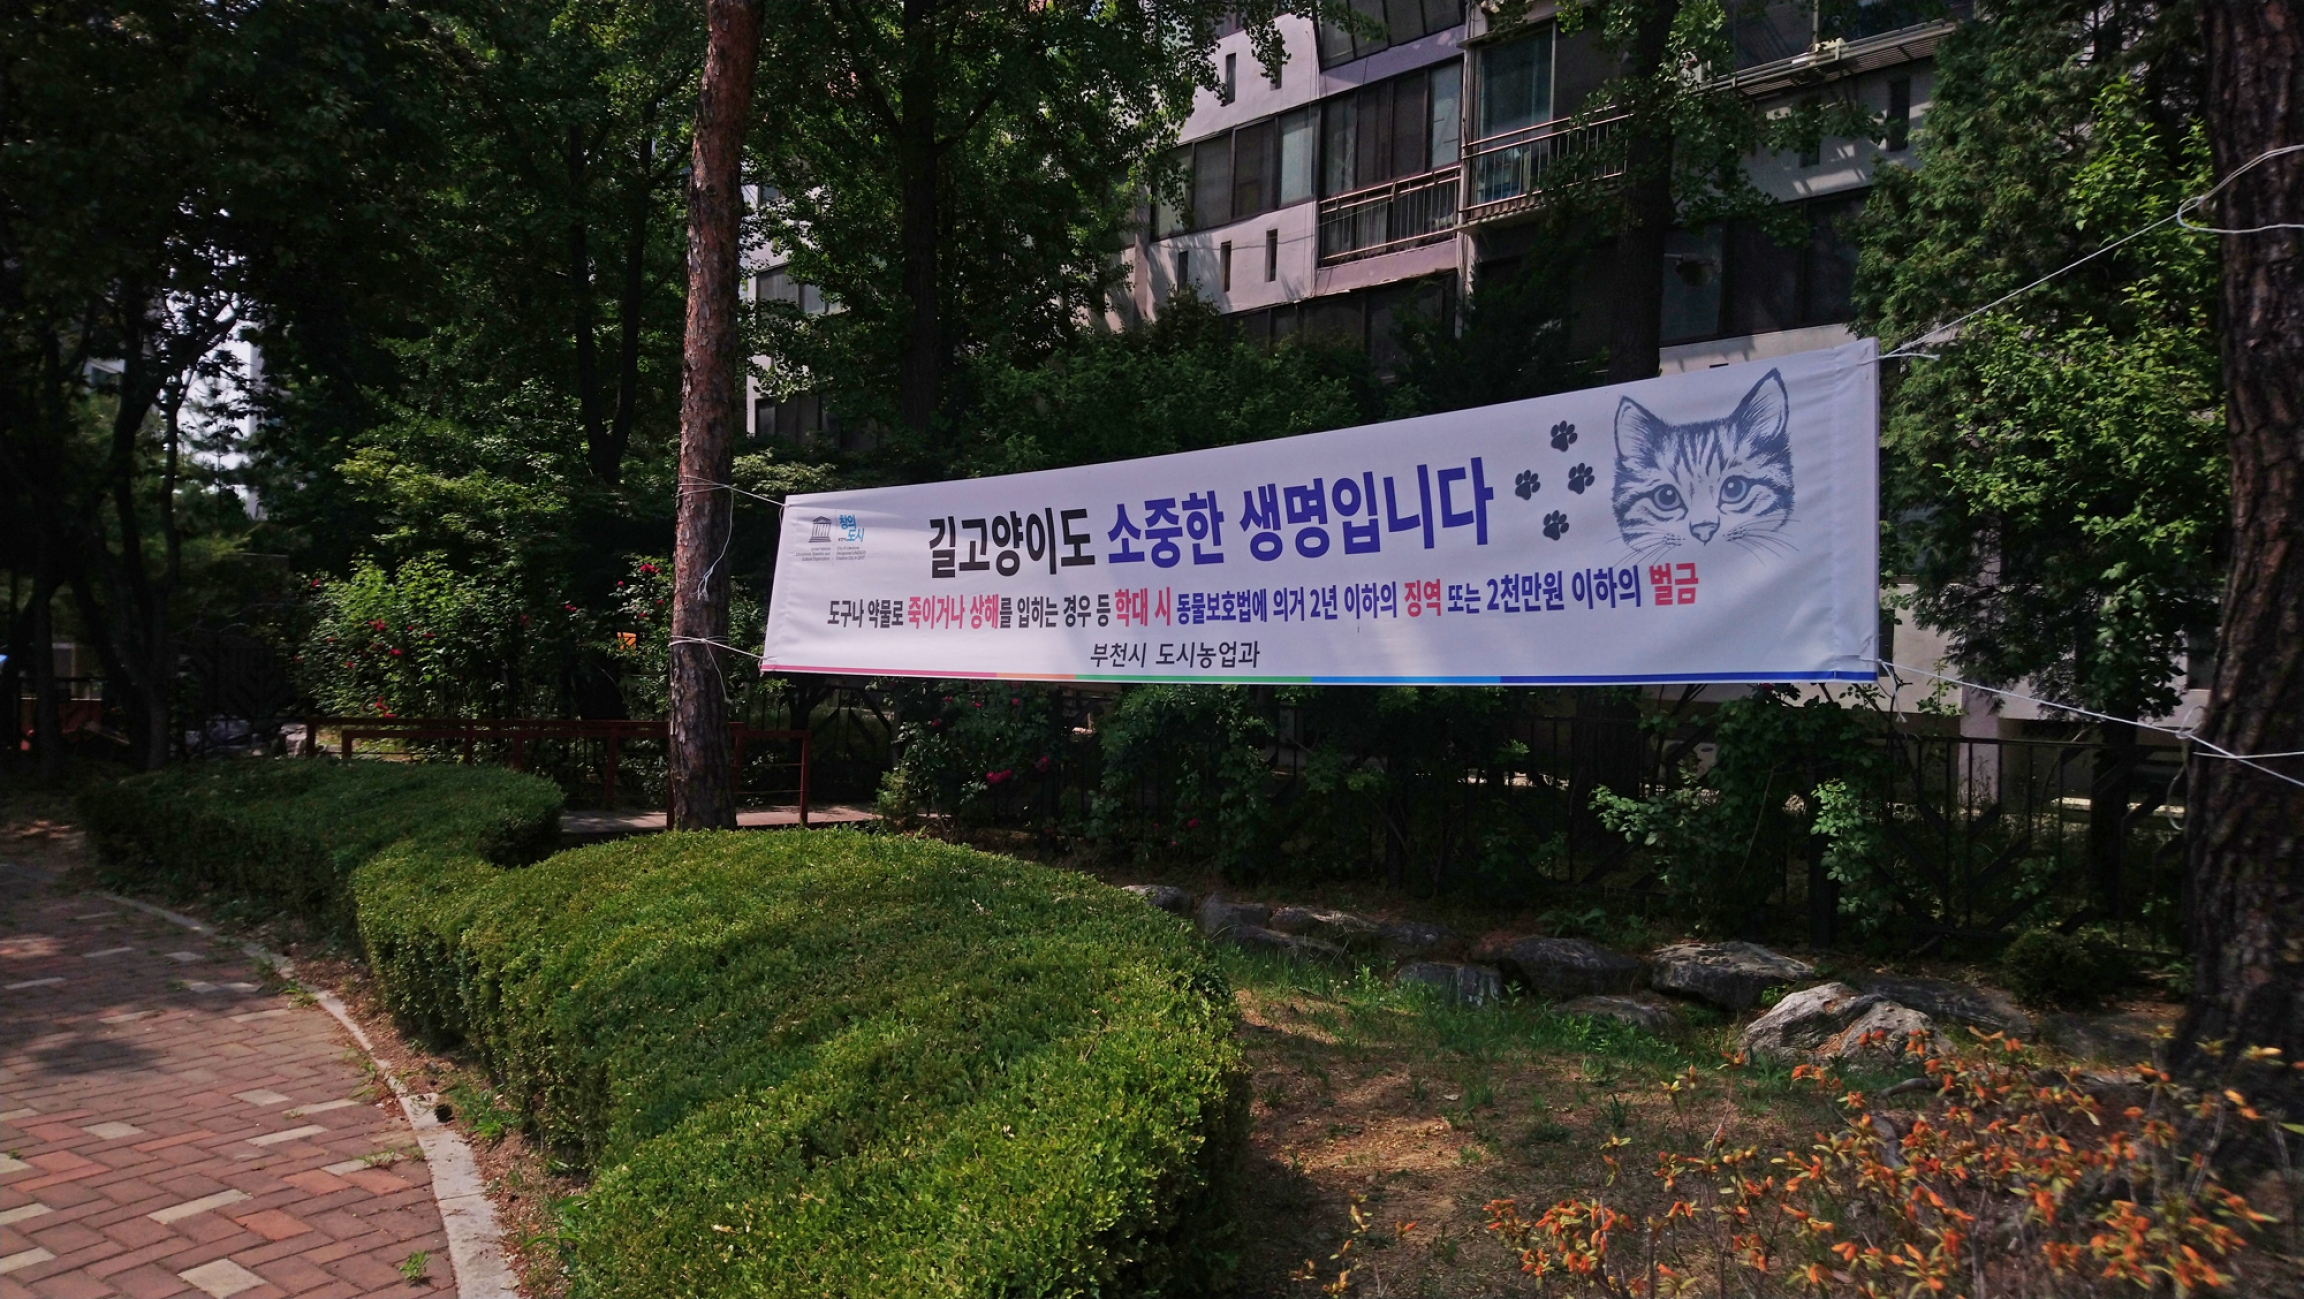 banner with cat face and Korean lettering promoting cat coexistence